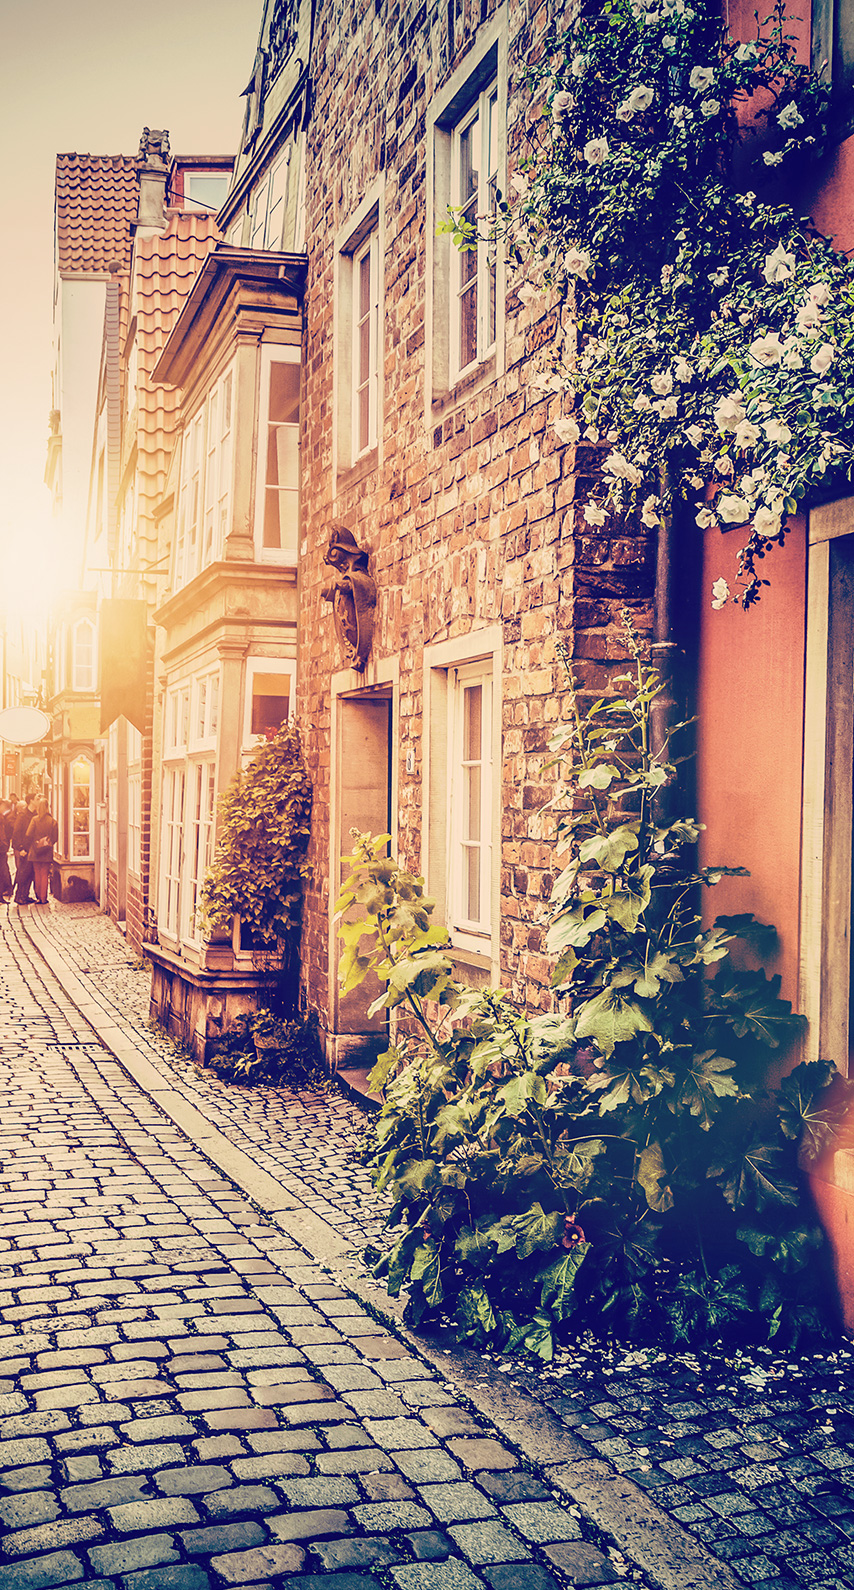 house, lamp, no person, old, outdoors, architecture, building, family, tourism, town, home, narrow, alley, pavement